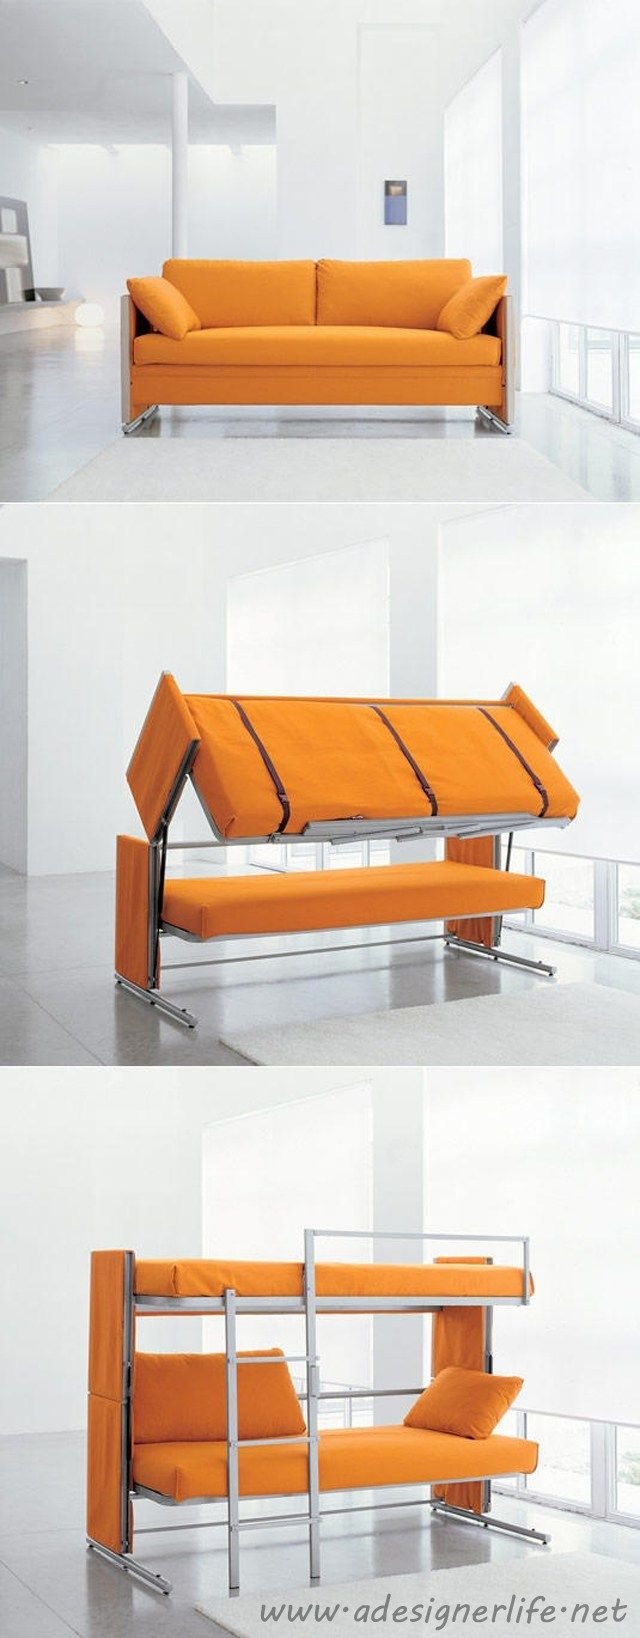 Awesome Products The most amazing convertible furniture Ever